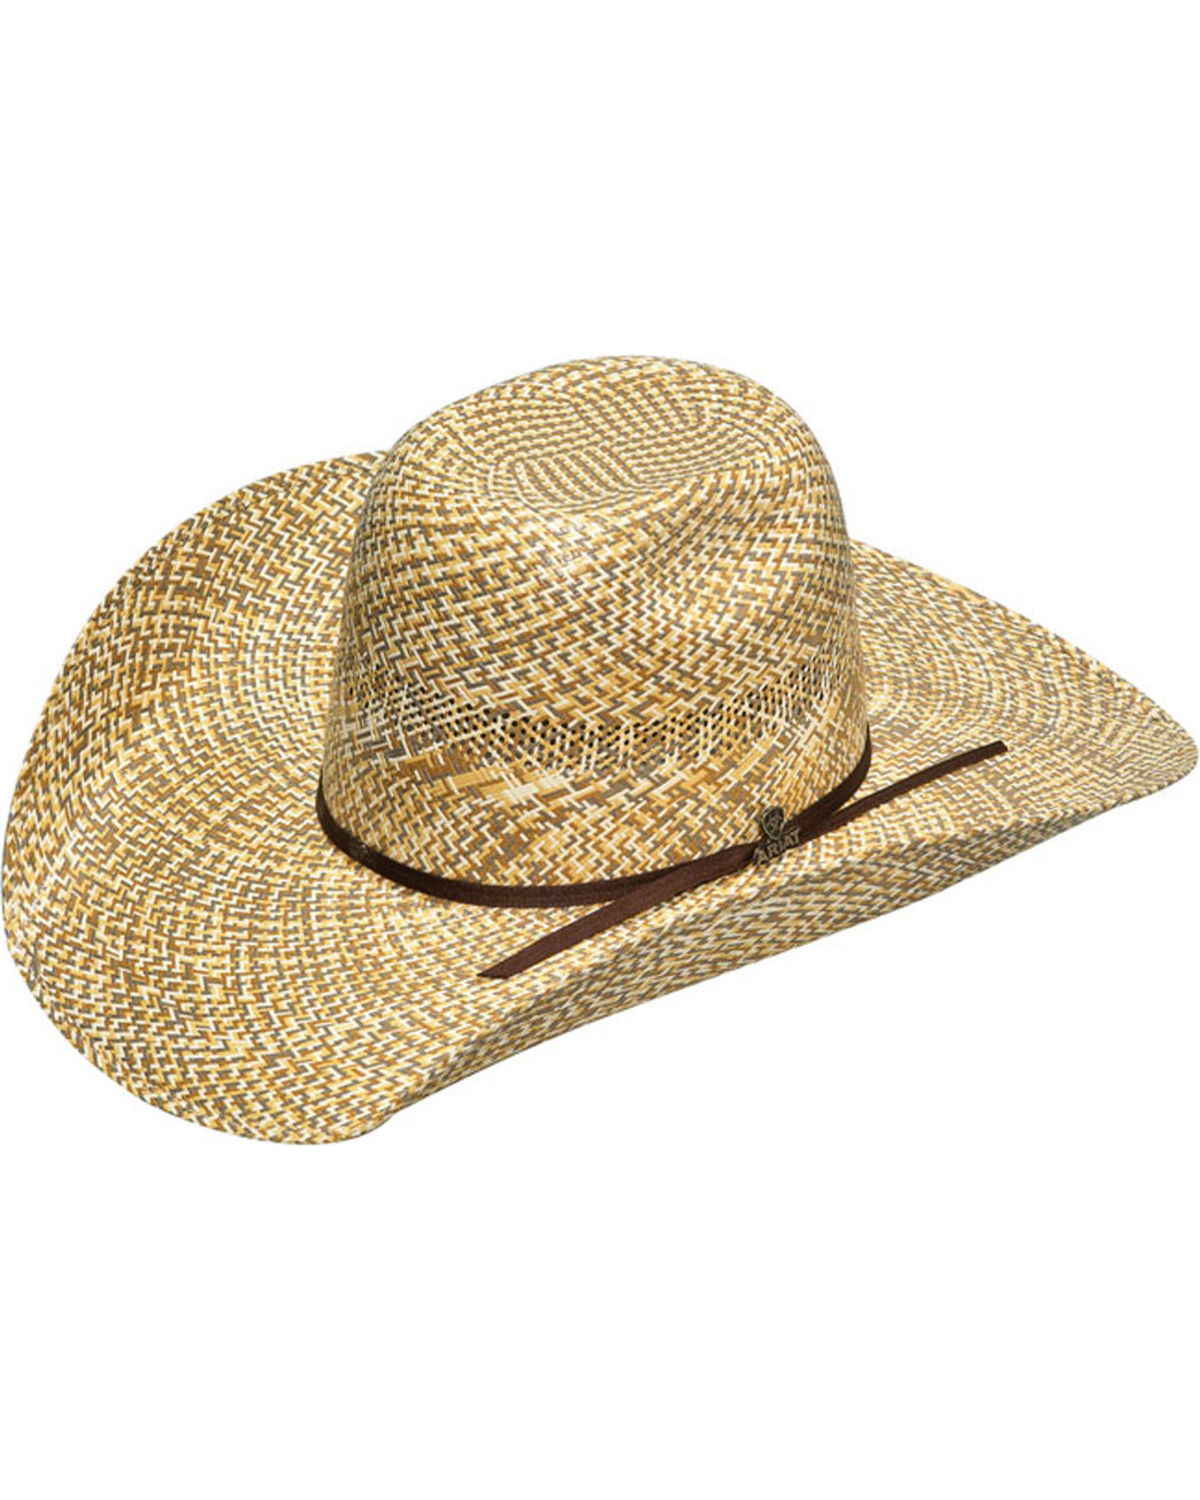 Ariat Tan and Brown 20X Shantung Hat  0b1caf07a31